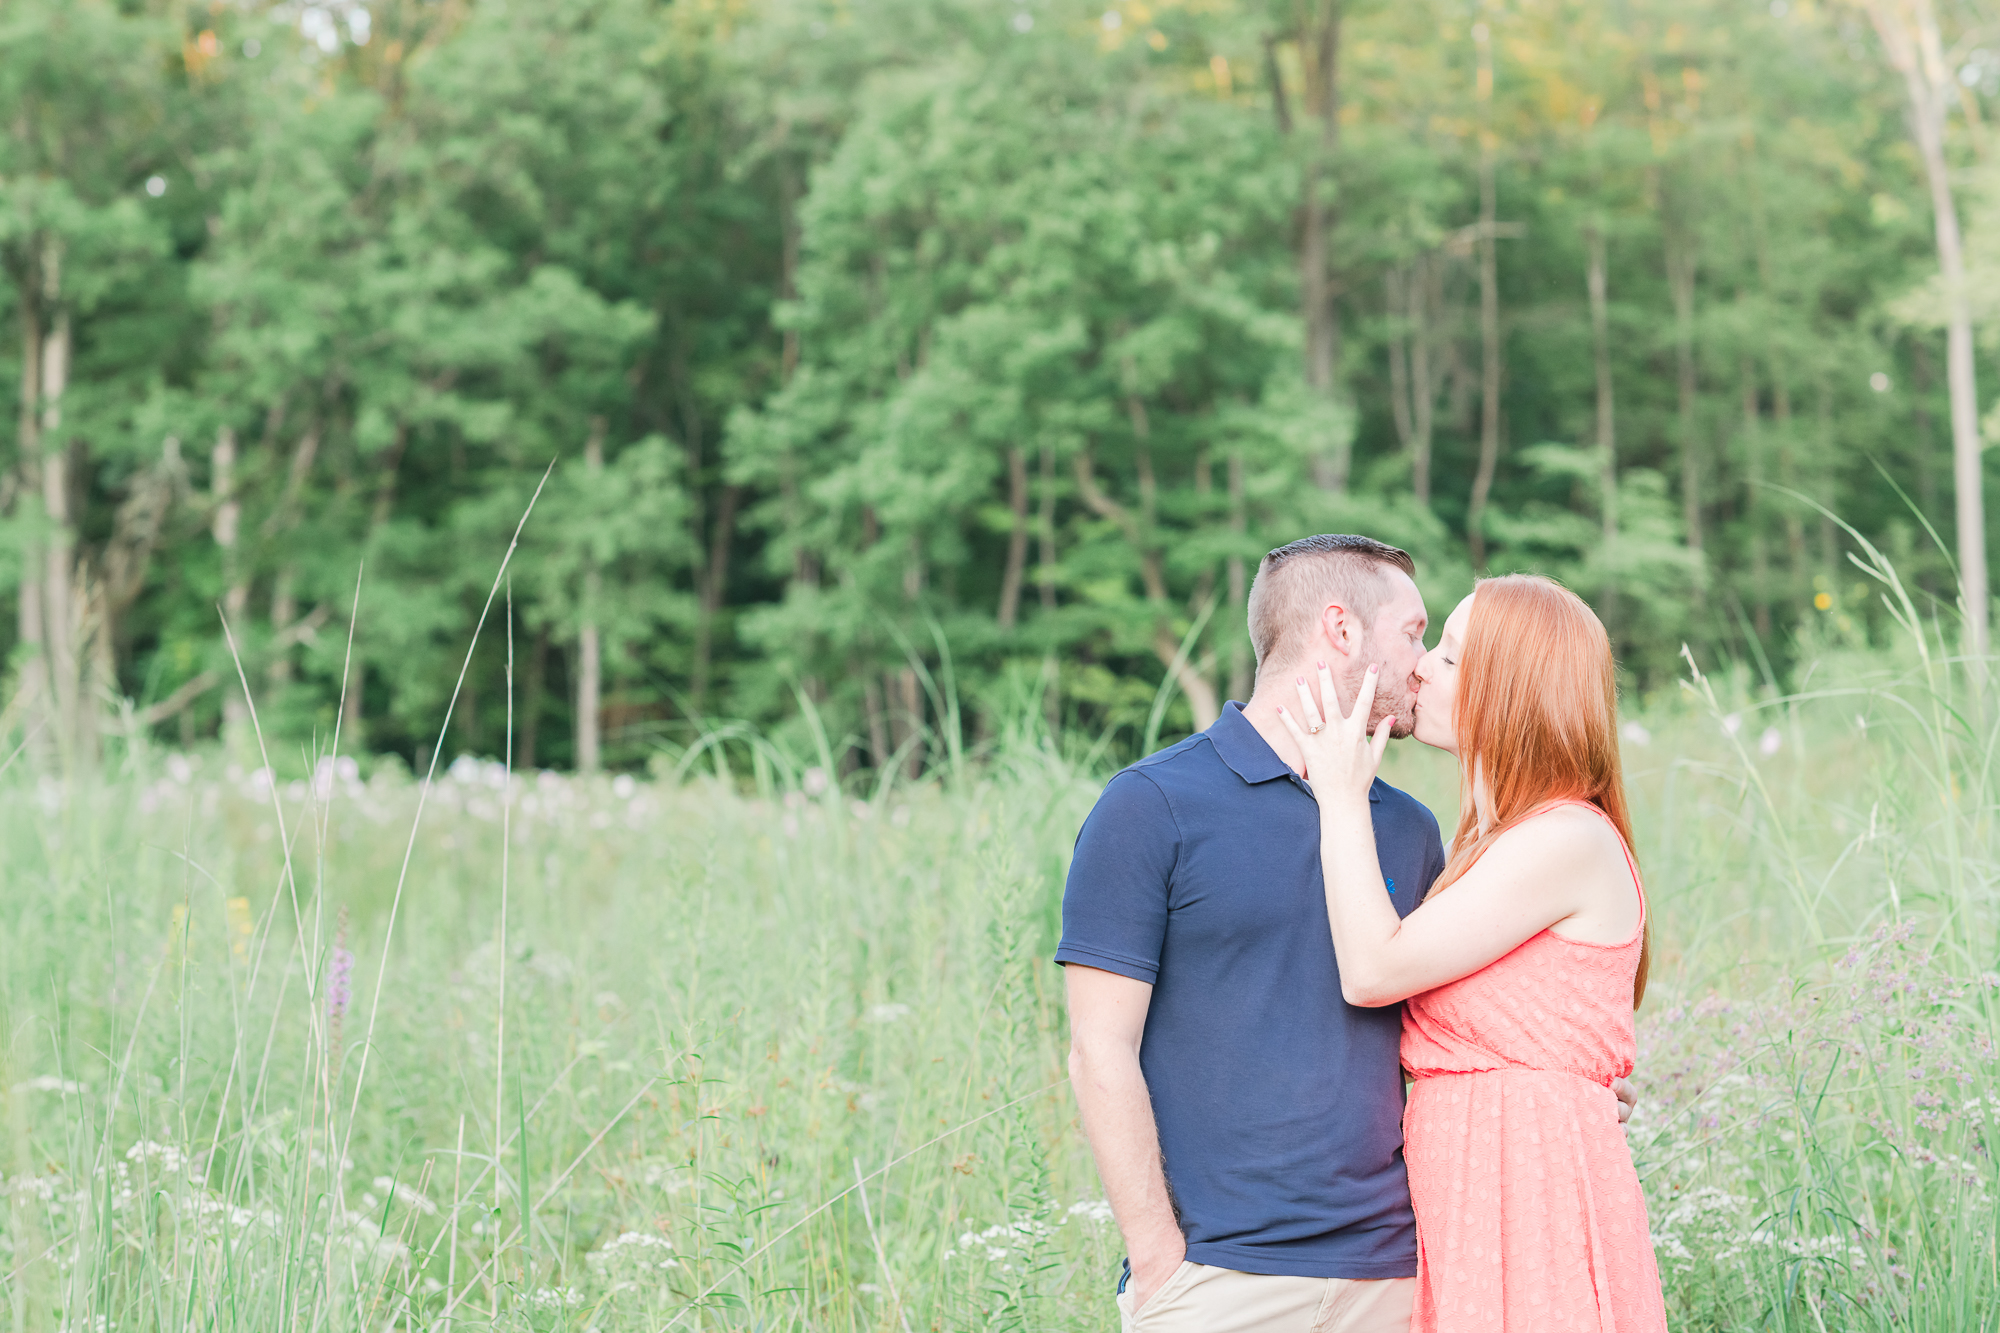 AB Favorites_Katy+Brian_Engagement Session_Brecksville Reservation_Brecksville_Ohio-45.jpg